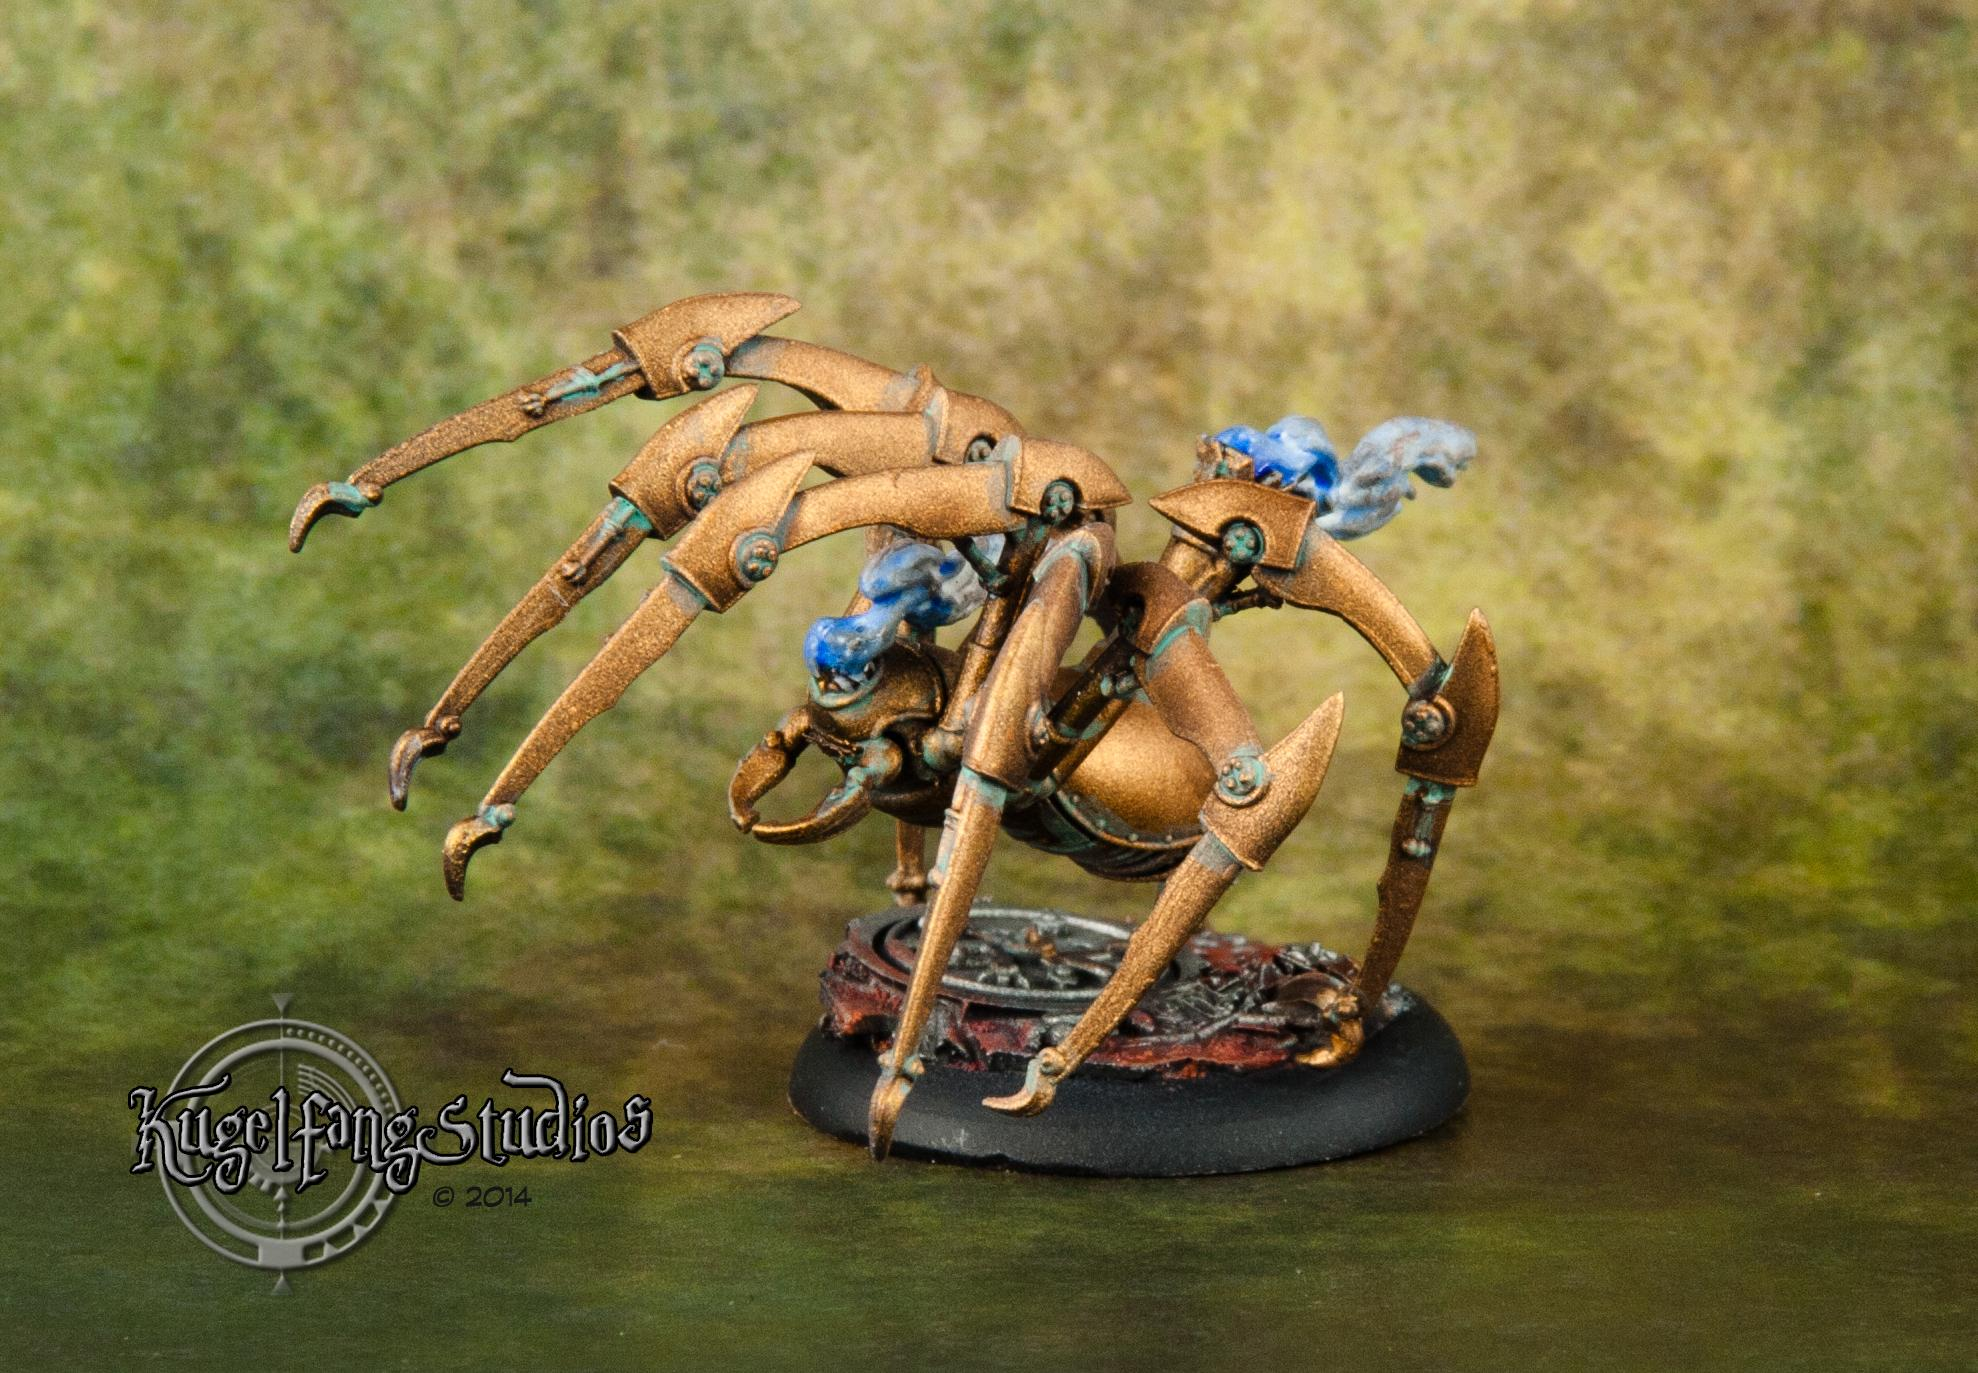 Arachnids, Brass, Howard, Joss, M&su, Malifaux, Punk, Ramos, Spider, Steam